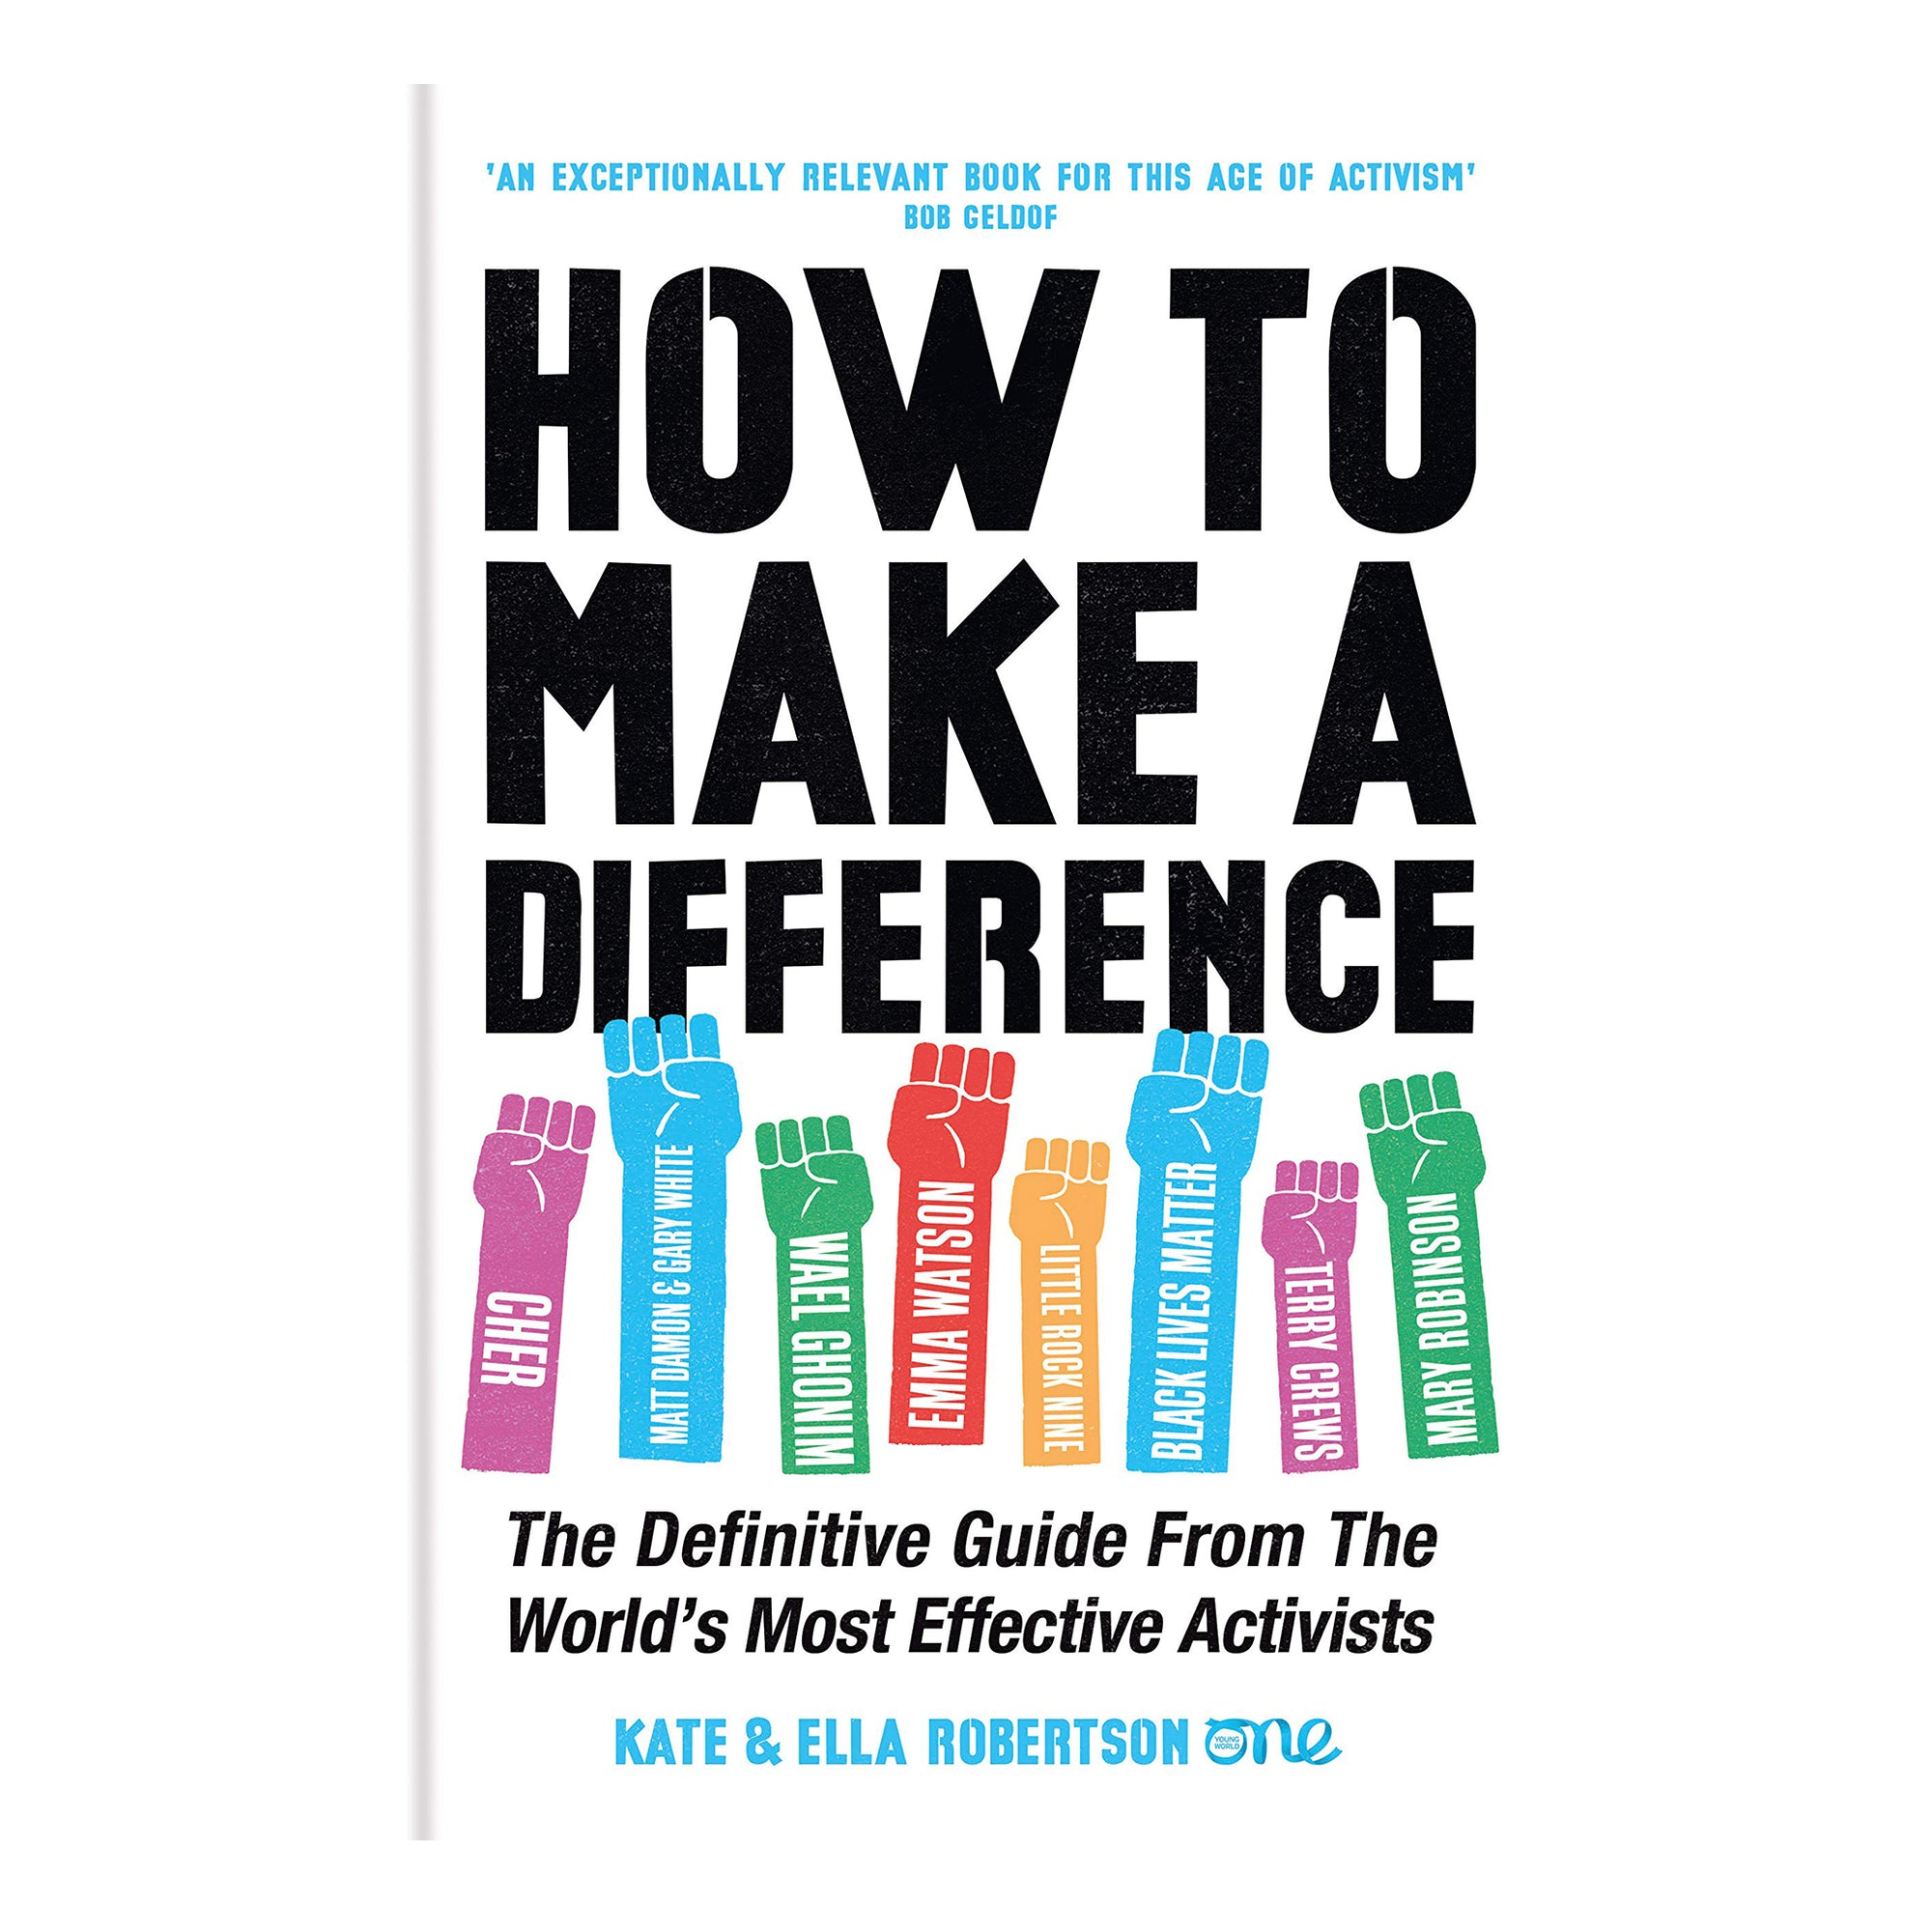 How to Make a Difference by Kate and Ella Robertson - Scandi Minimal